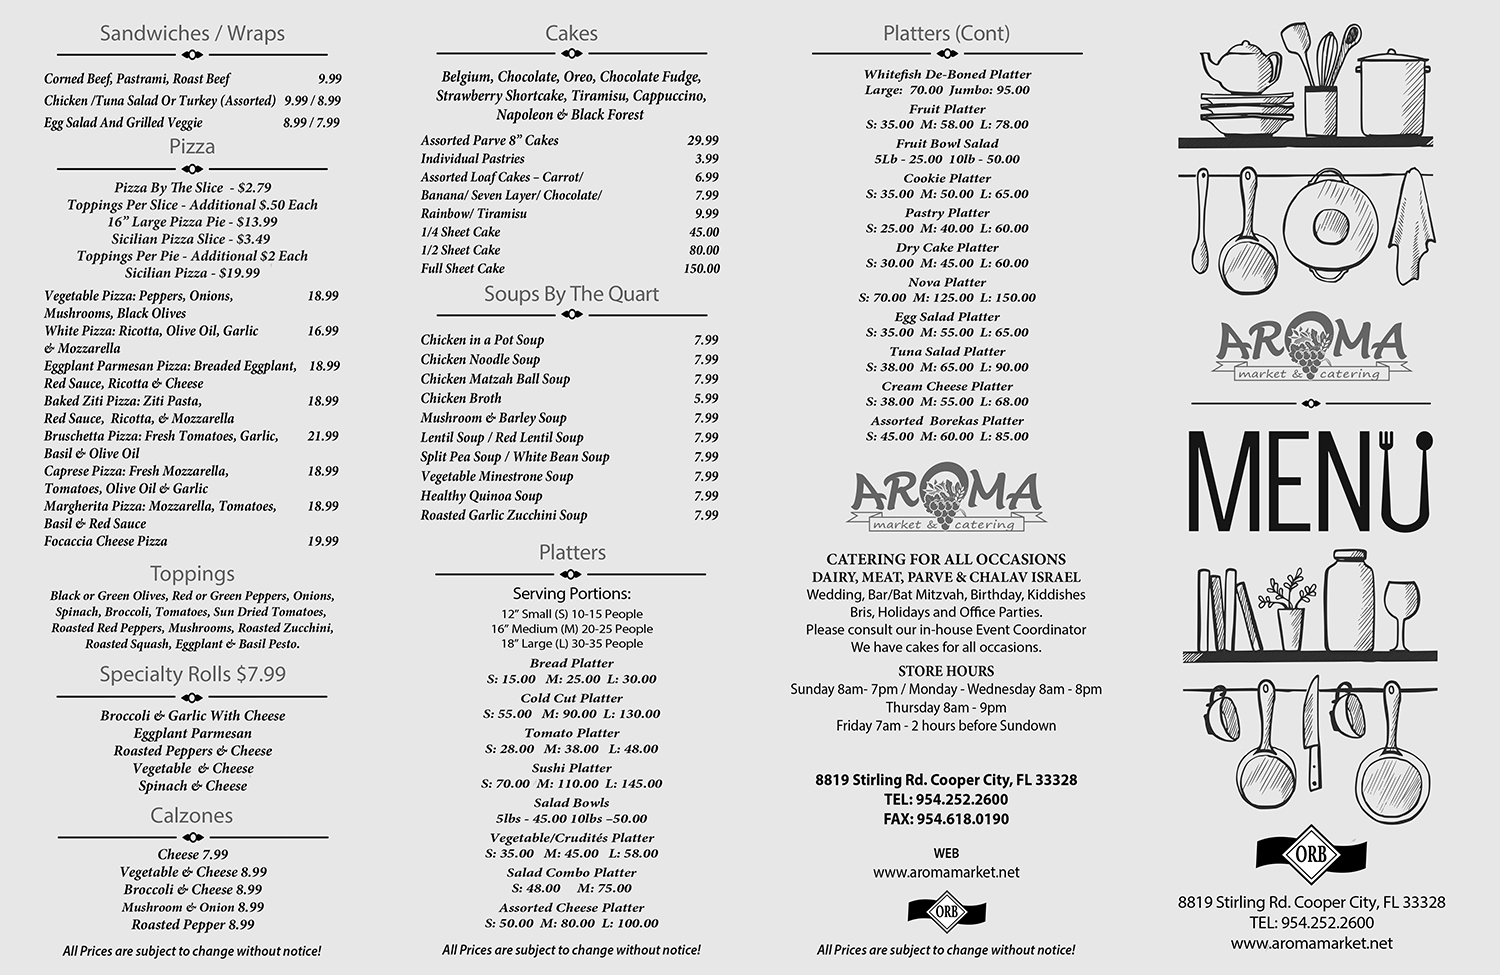 DELI MENU - Take a break from the kitchen and order from Aroma Market's delicious prepared food menu. All our recipes are prepared in-house by our talented chefs. We also cater all occasions - Dairy, Meat, Parve & Chalav Israel